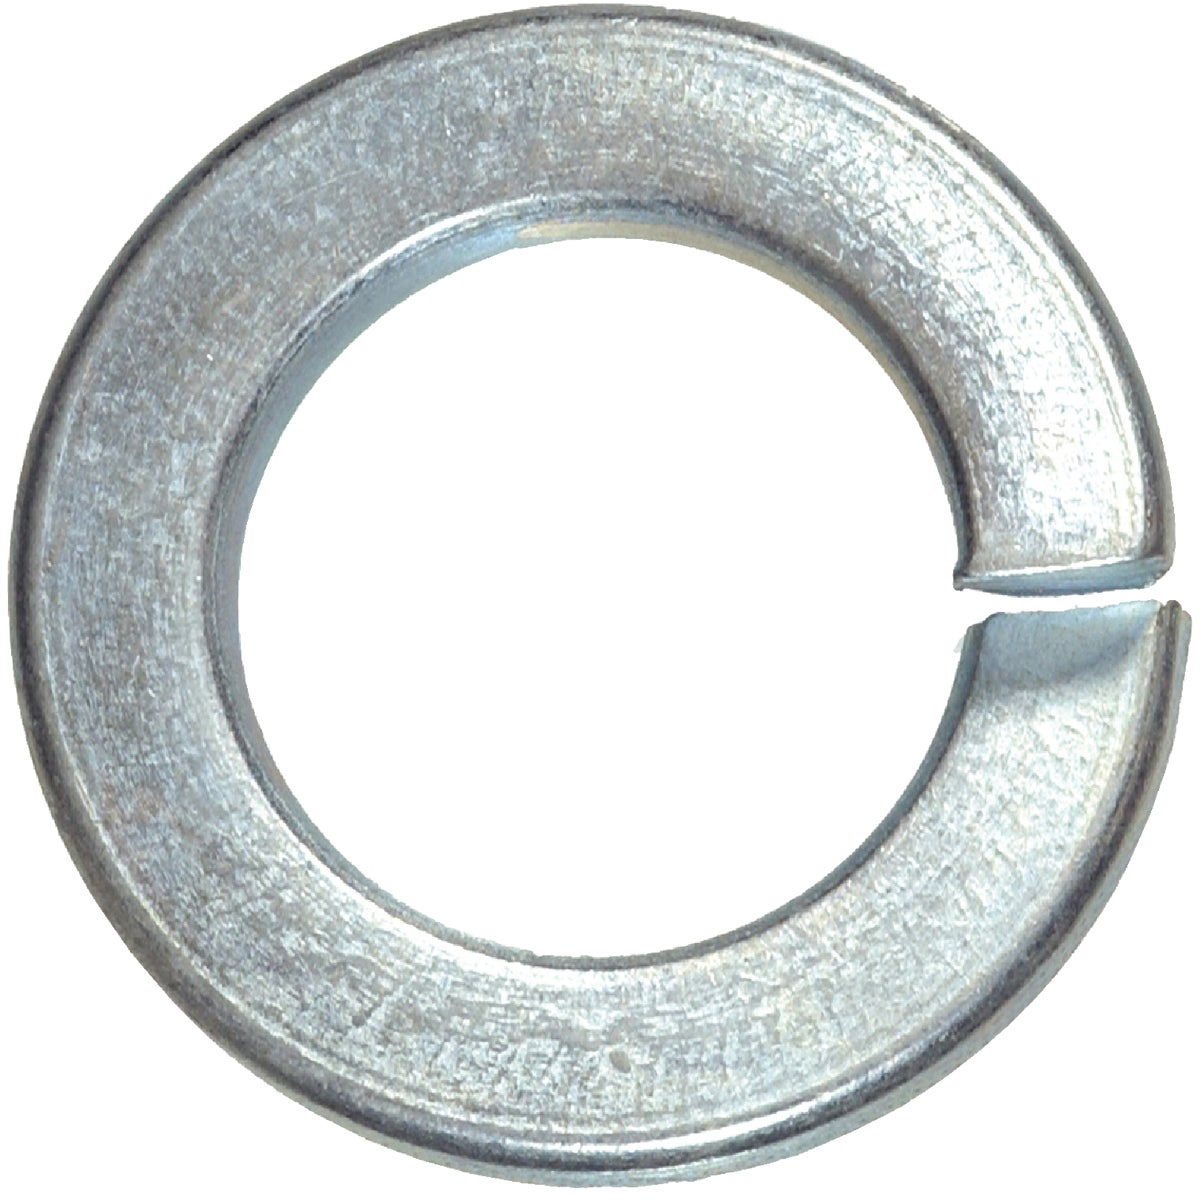 "100PC 5/16"" LOCK WASHER"